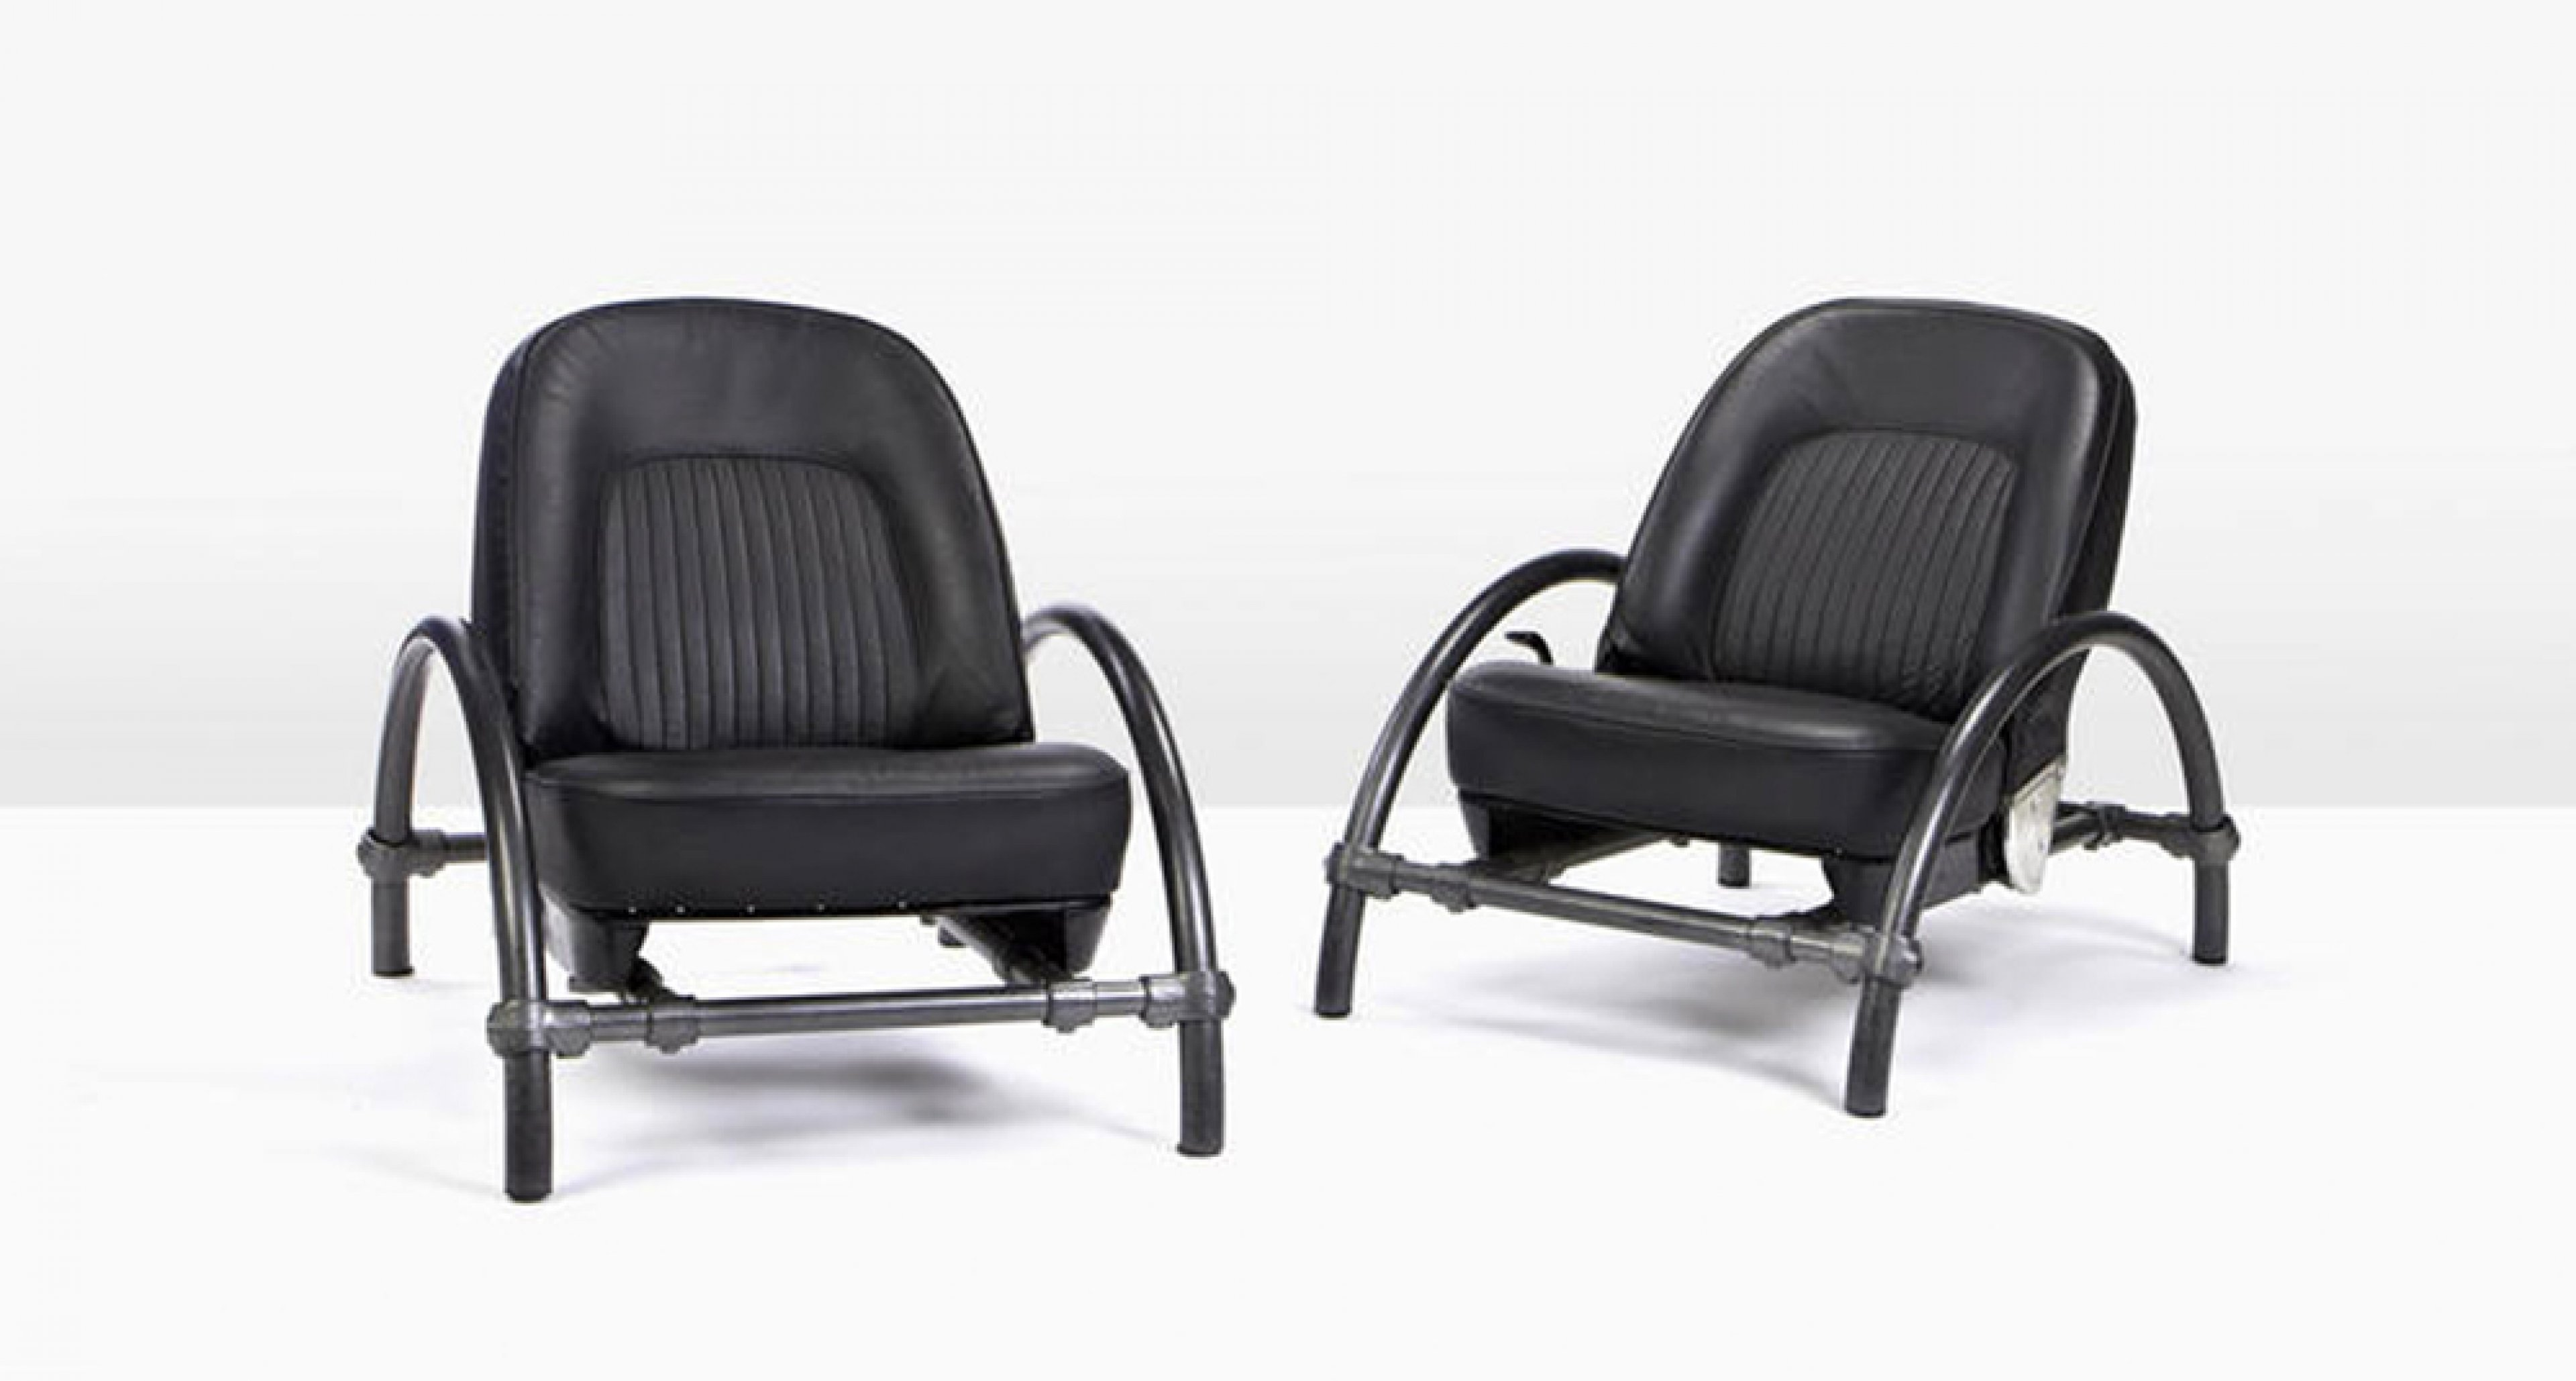 Ron Arad for One Off Ltd, Pair of Rover Chairs, circa 1981, estimate £2,000 - 3,000.